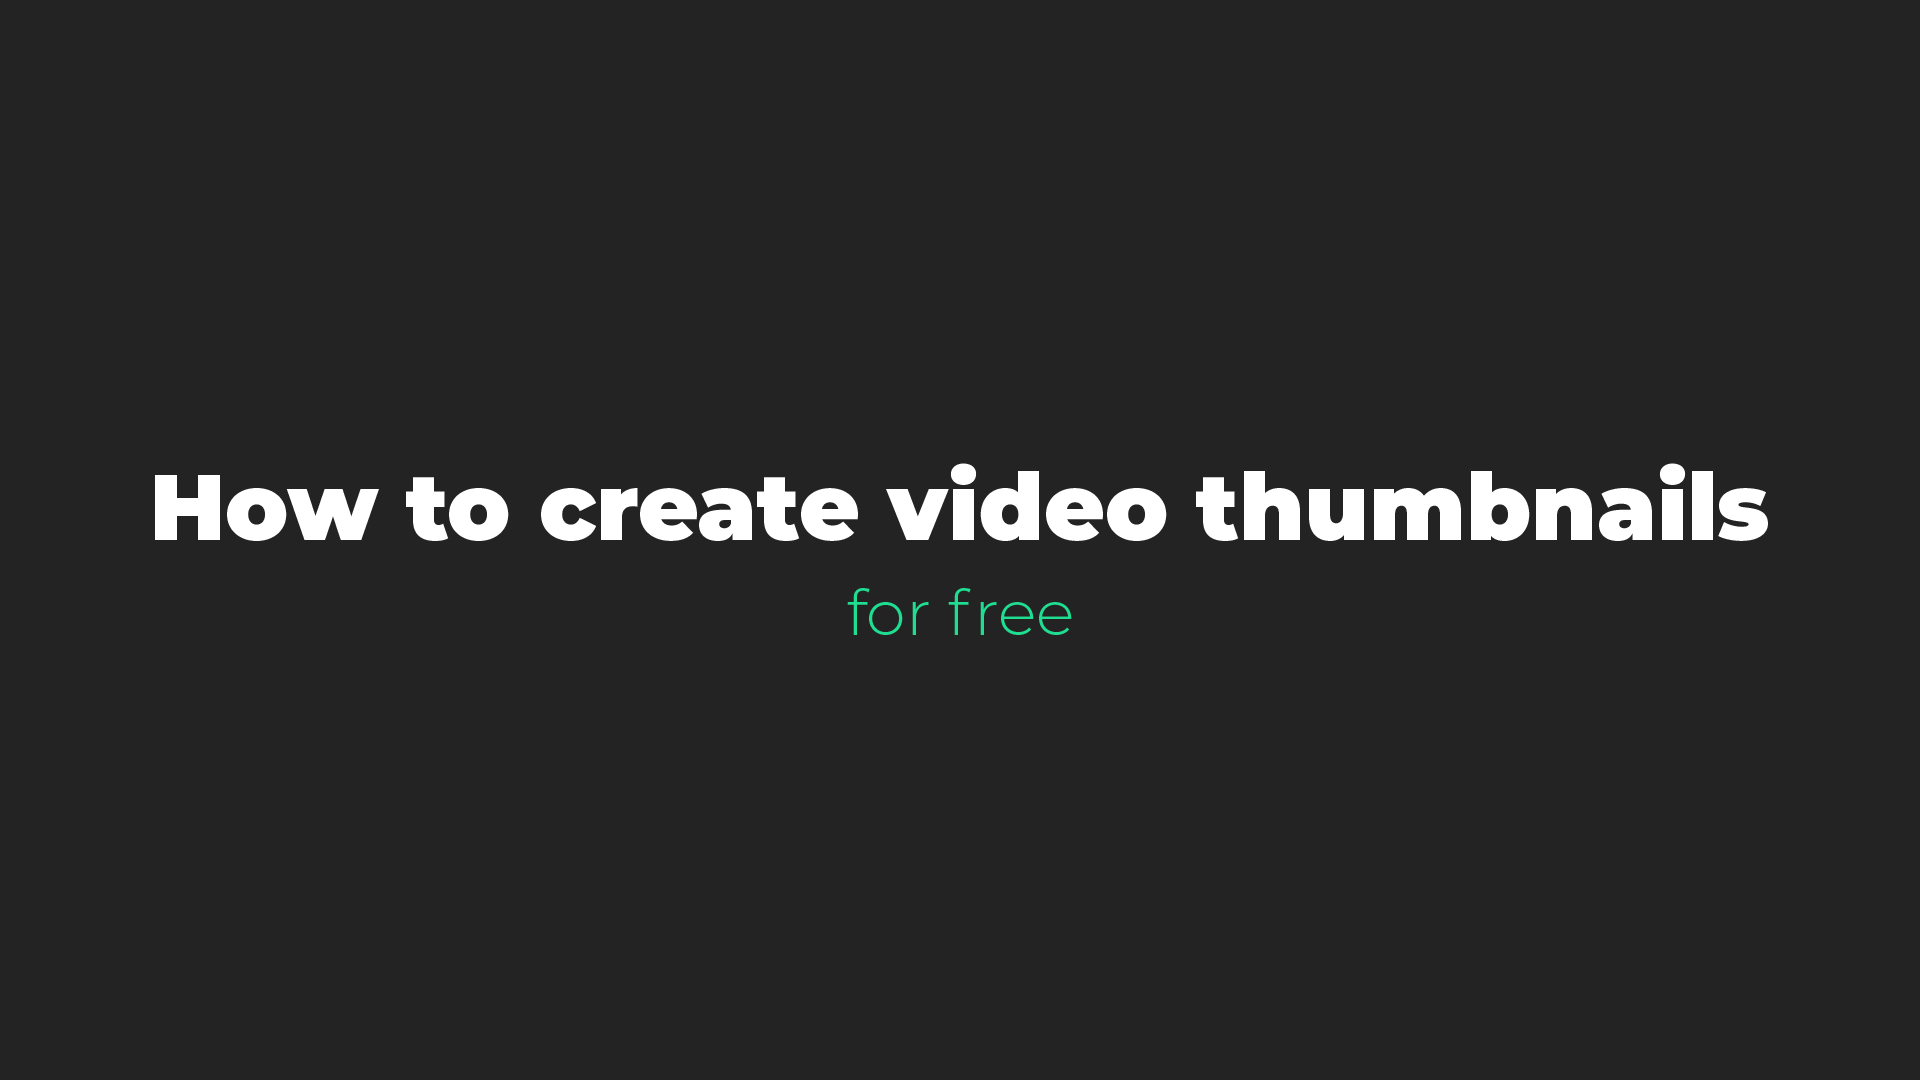 Video thumbnail – How to master these and create them for free